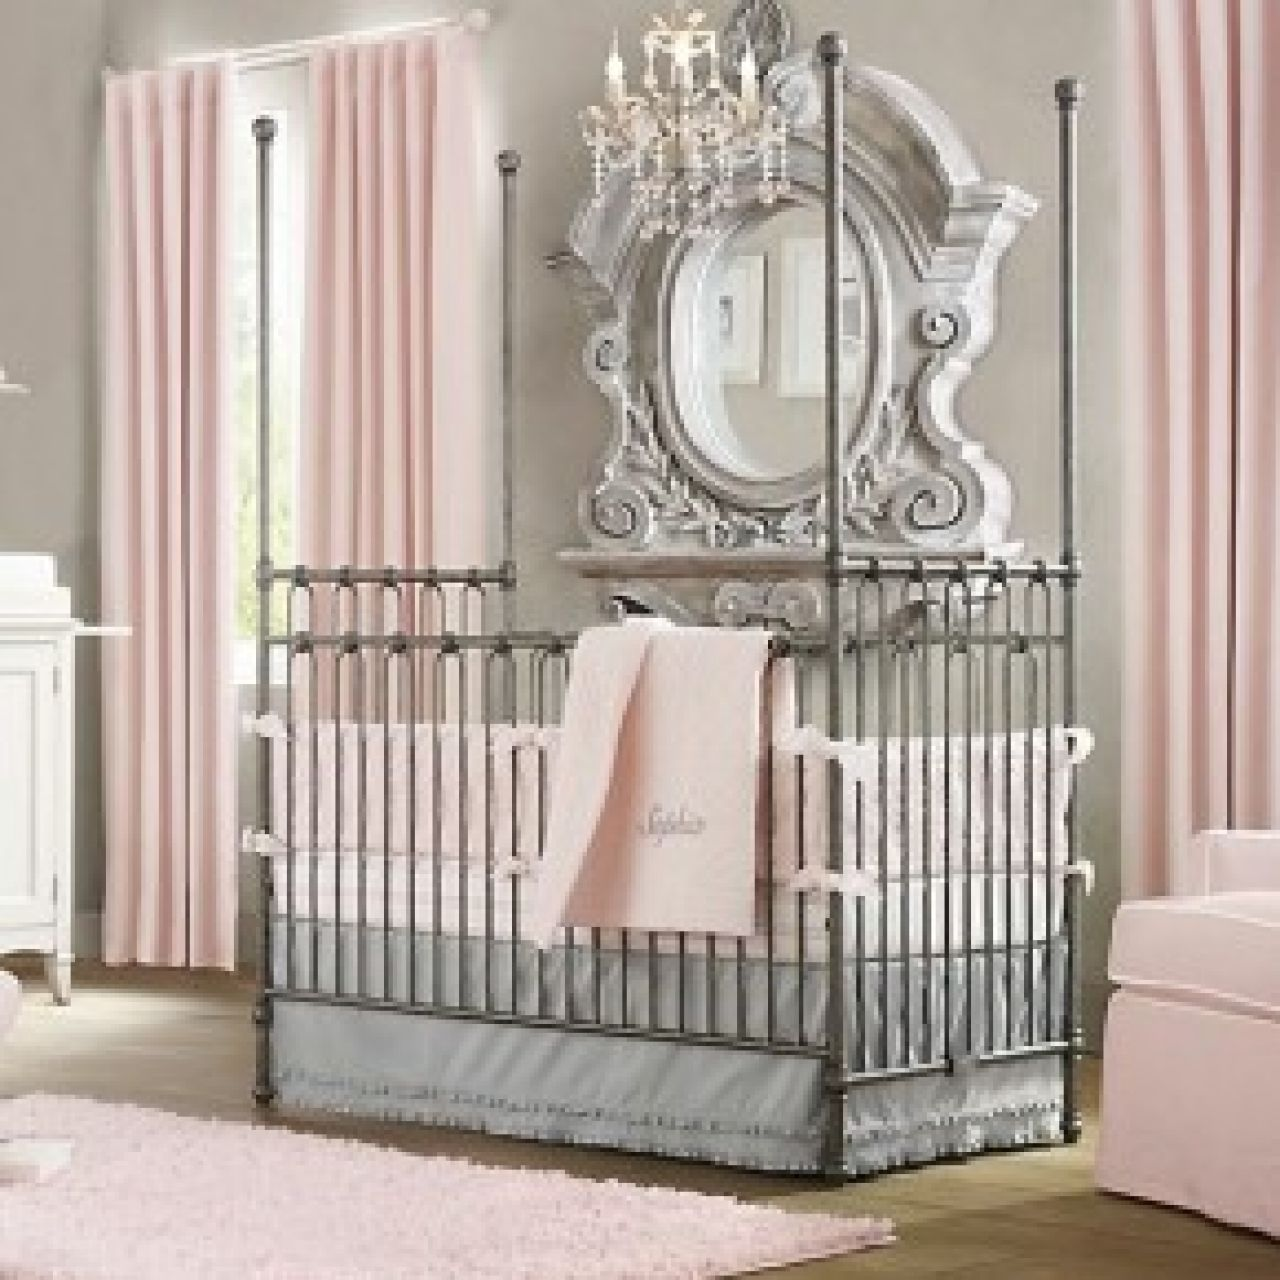 Baby cribs pictures - Bedroom Dazzling Classic Baby Cribs With Wonderful Gypsum Vintage Round Mirror And Awesome Pink Curtain Windows